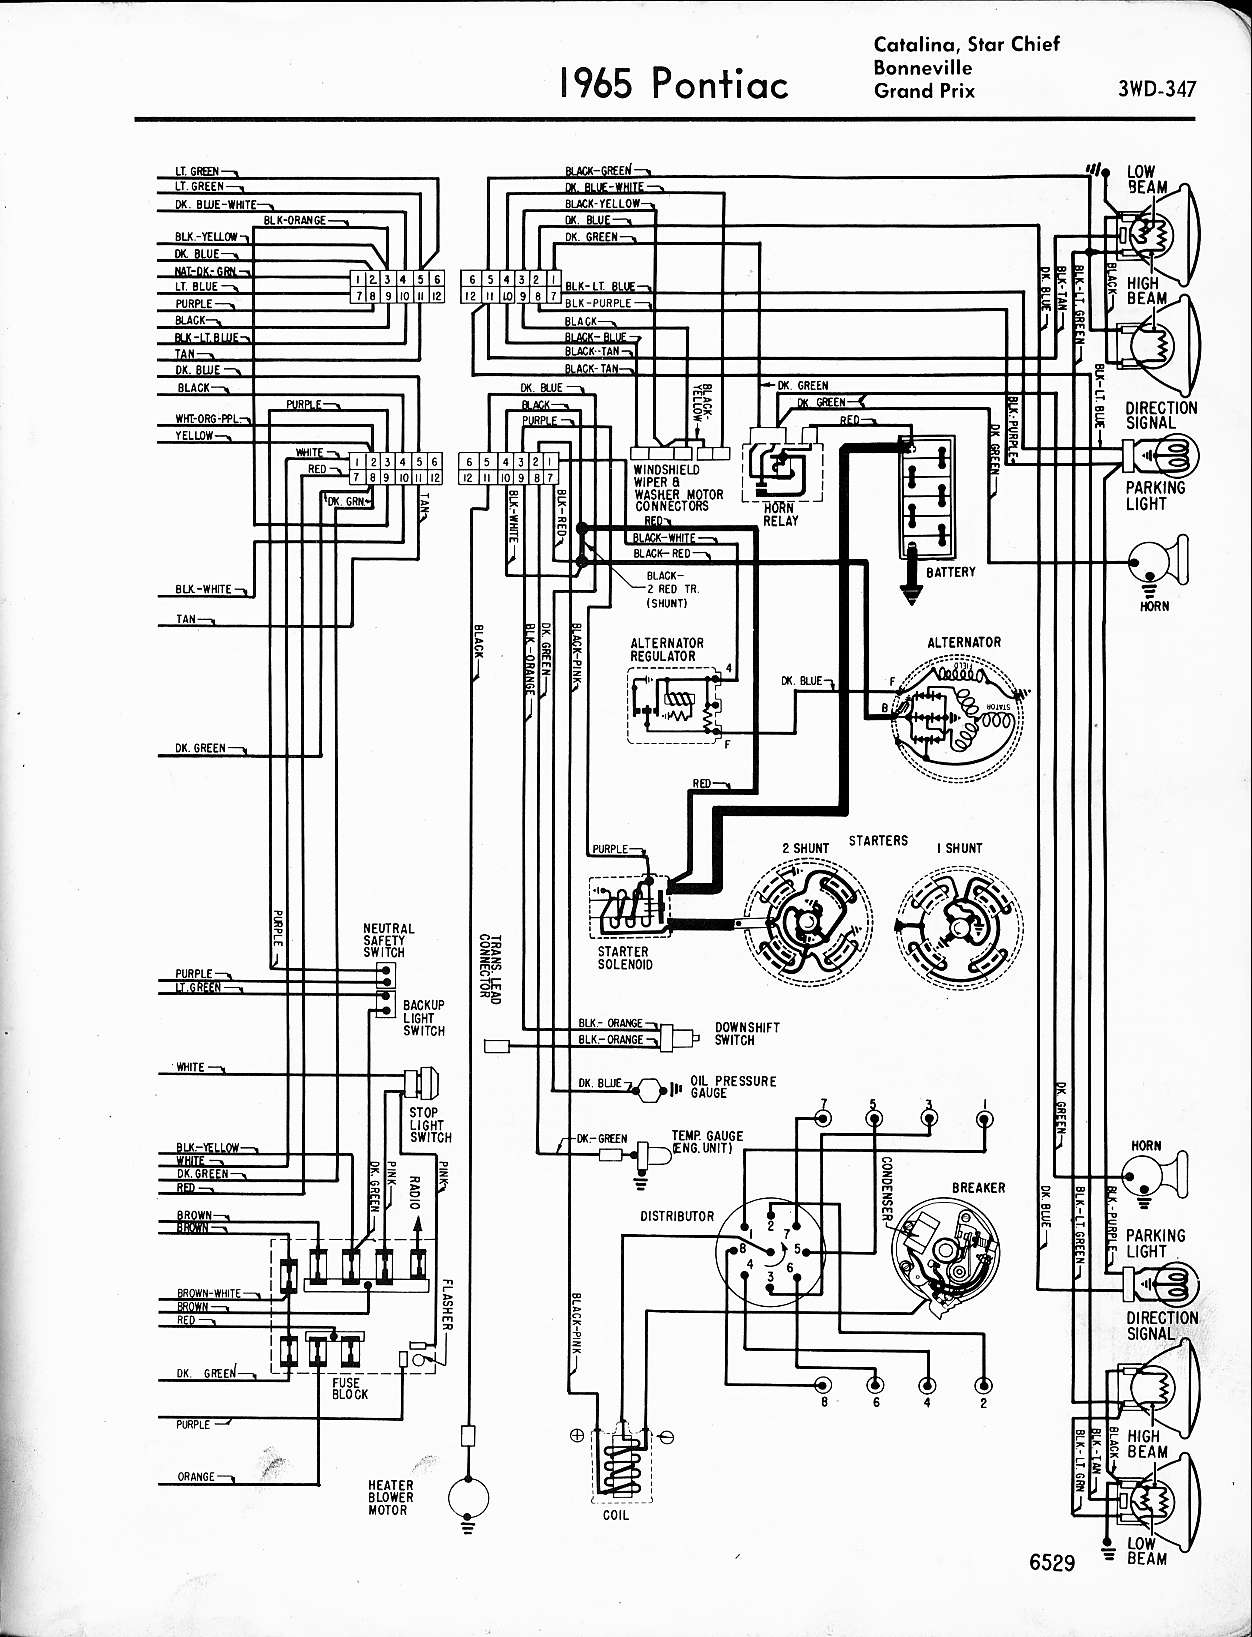 Pontiac Wiring 19571965. 1965 Catalina Star Chief Bonneville Grand Prix Left Page. Pontiac. 2002 Pontiac Grand Prix Se 3 1 Engine Diagram At Scoala.co